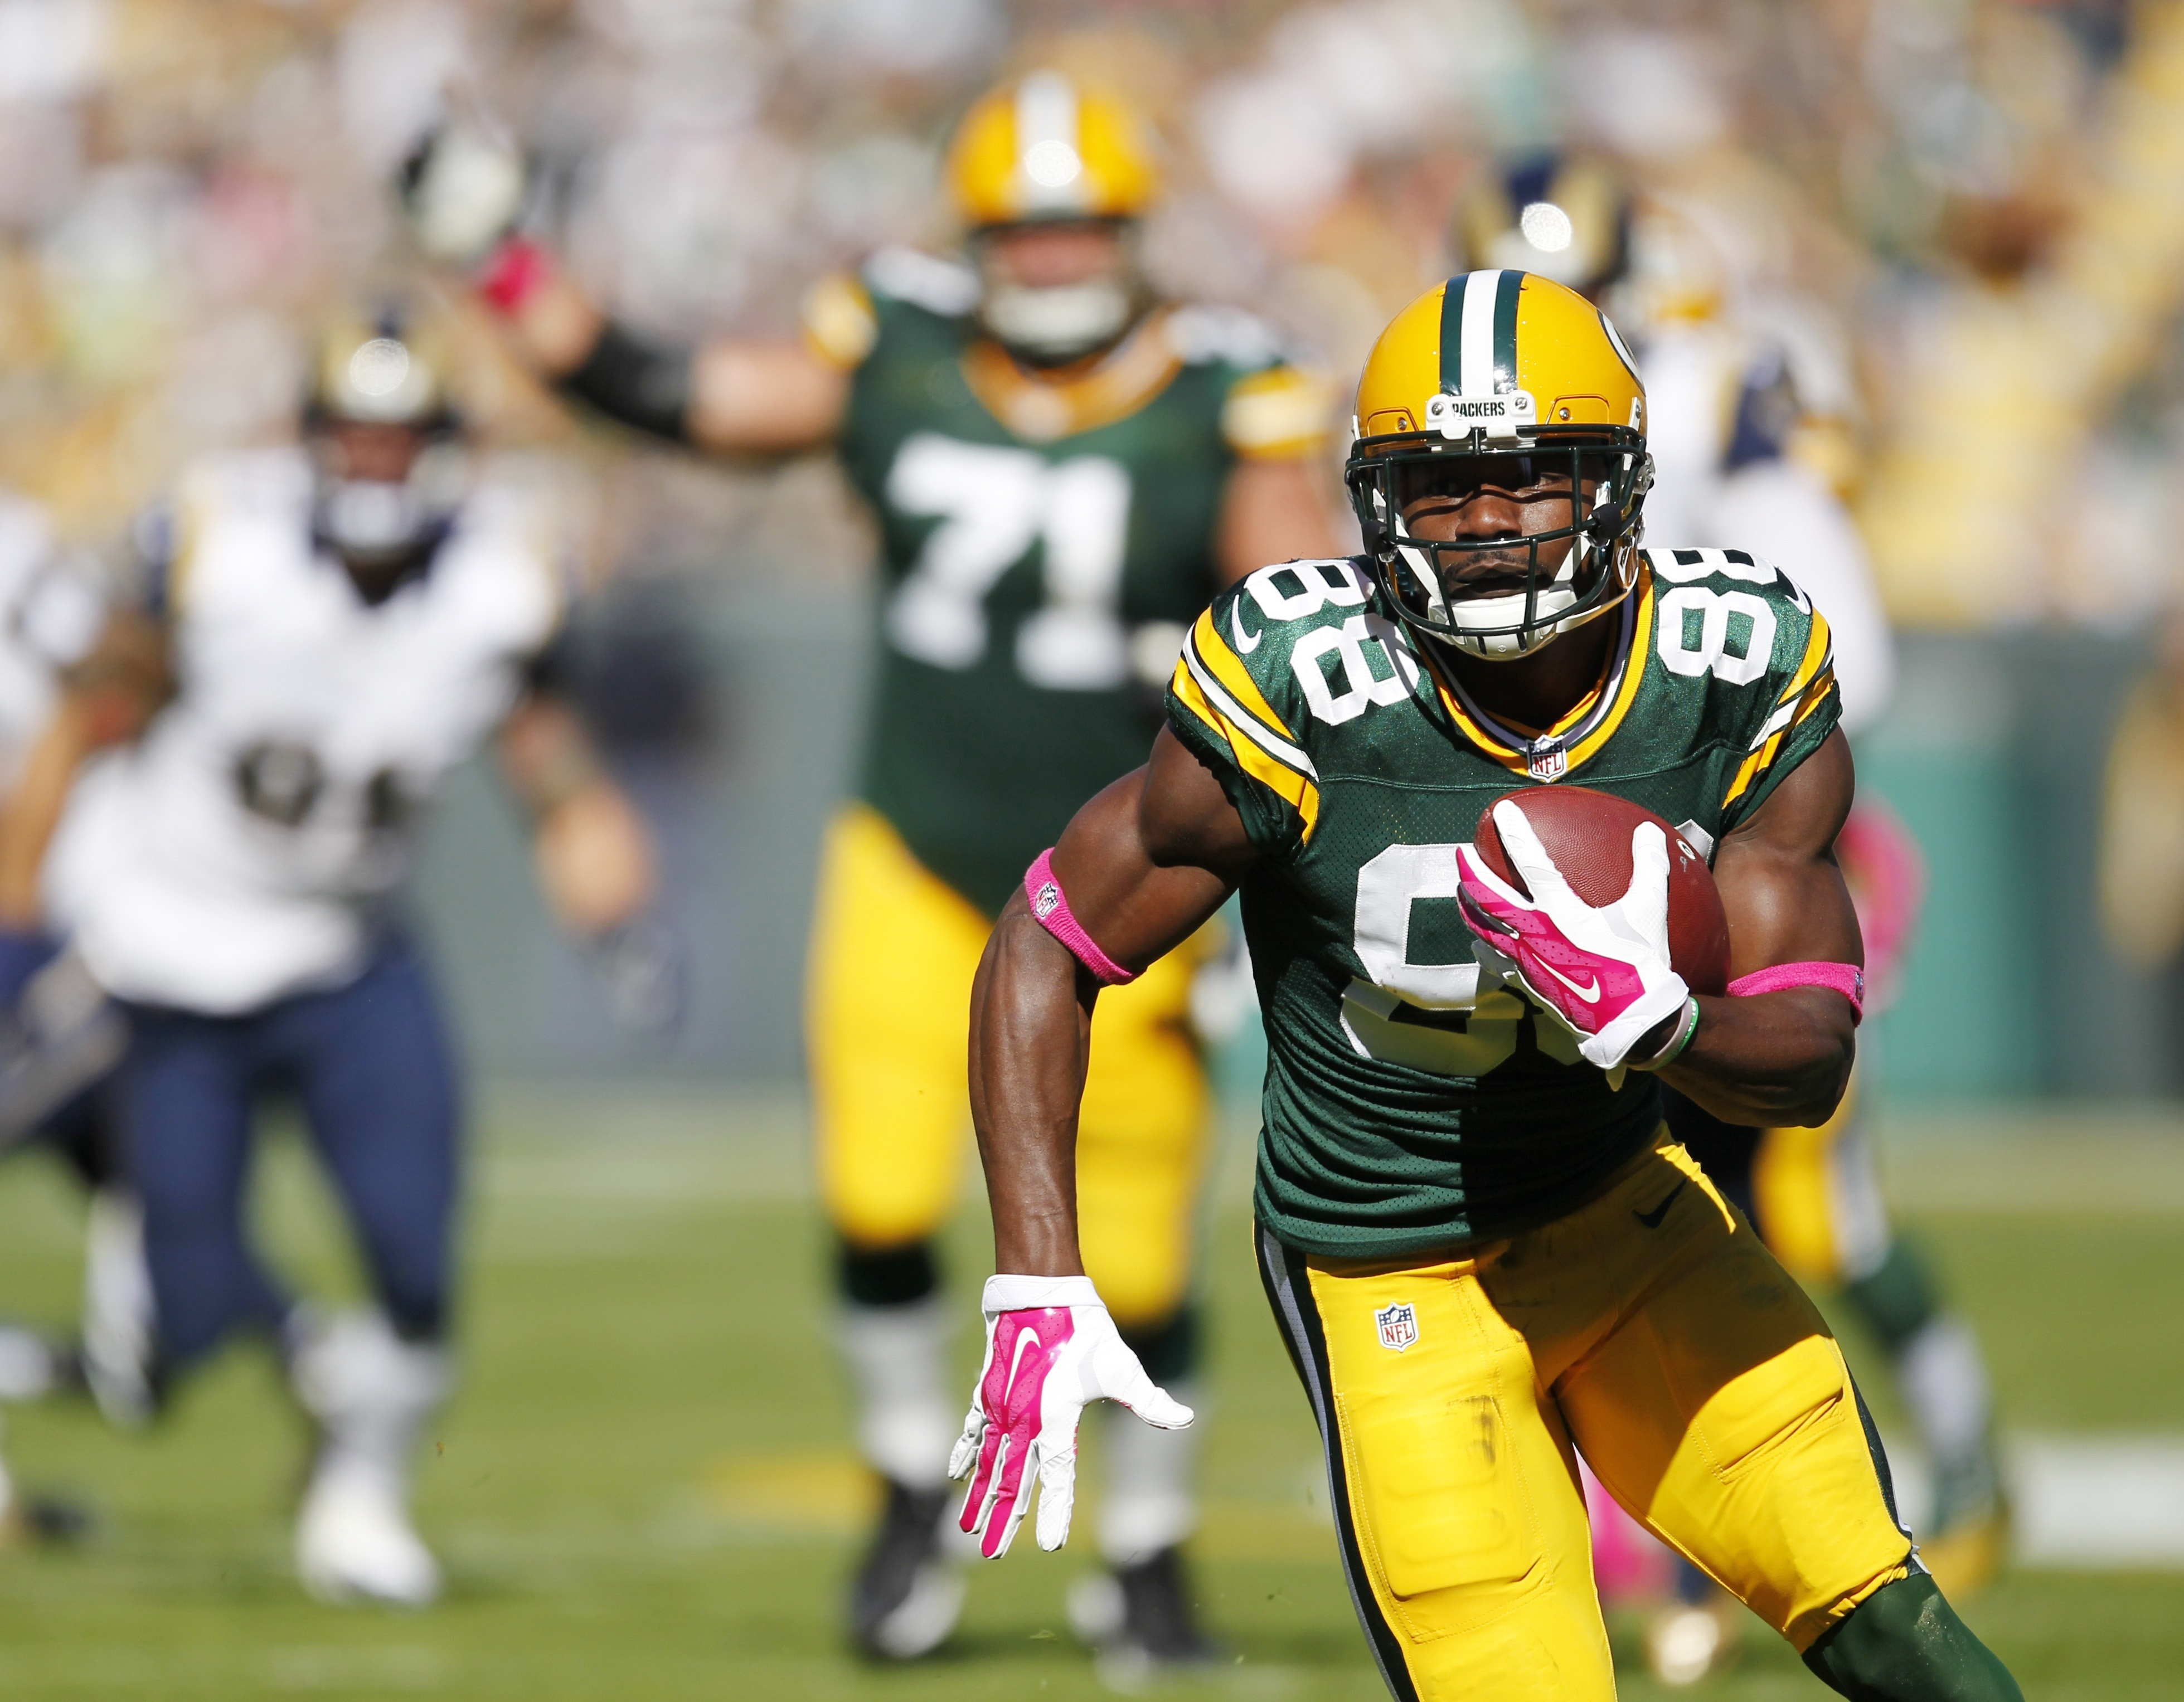 Preview: Packers look to attack depleted Falcons secondary